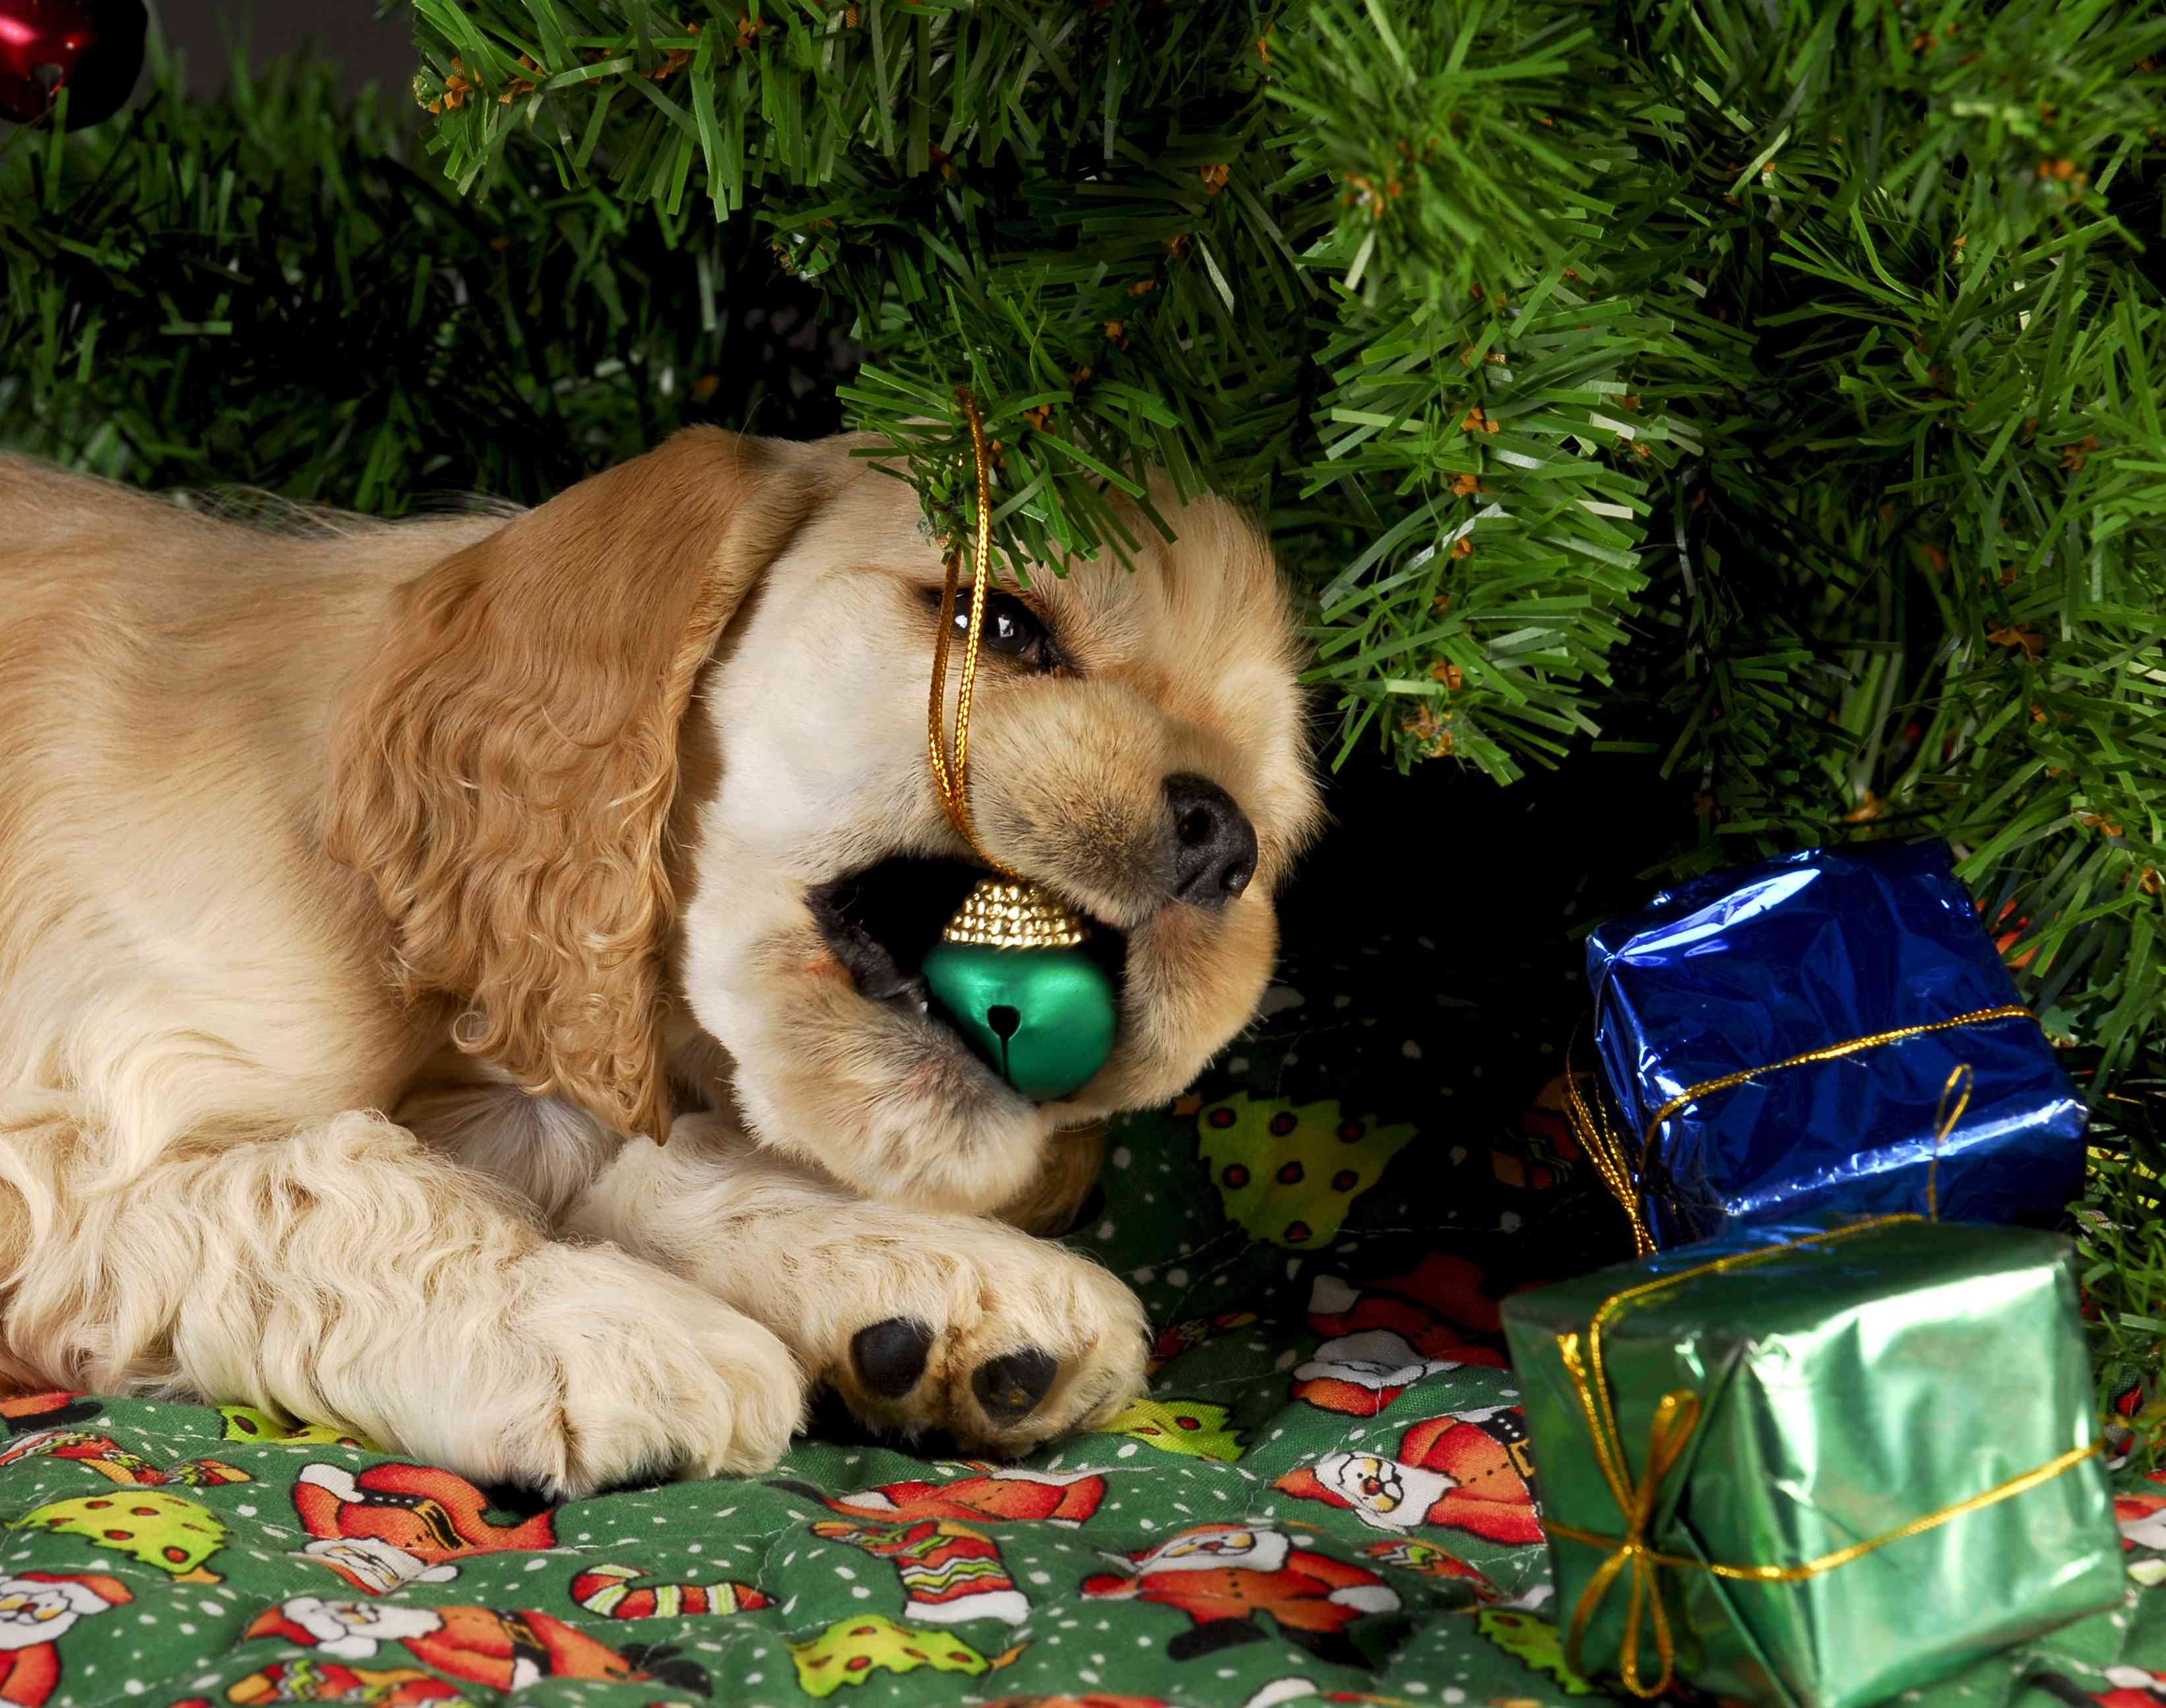 A puppy with a Christmas tree ornament in its mouth